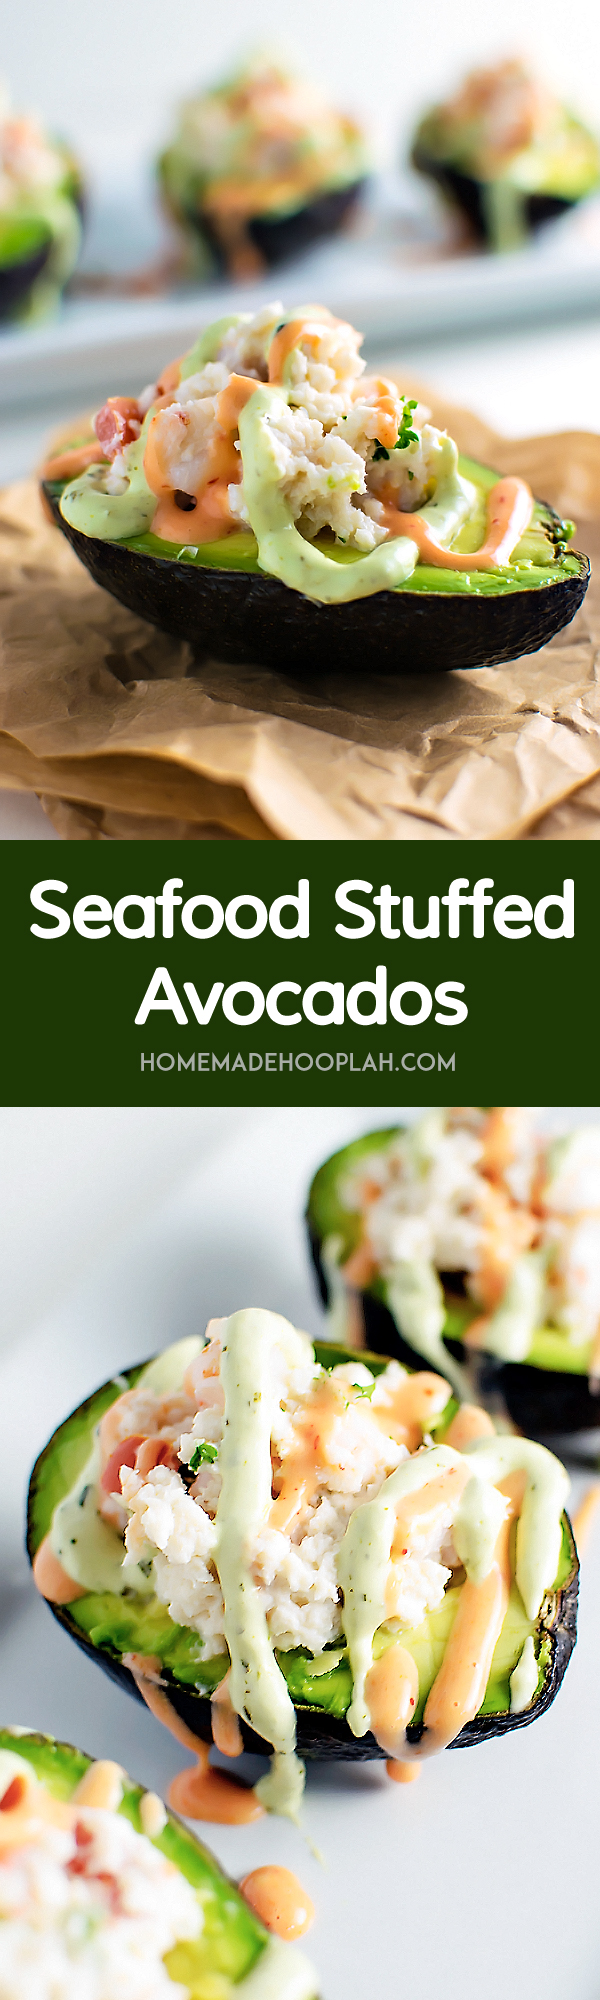 Seafood Stuffed Avocados! Halved avocados filled with chopped shrimp, fresh crab, and tomato and then drizzled with sriracha and avocado creams on top. | HomeamdeHooplah.com